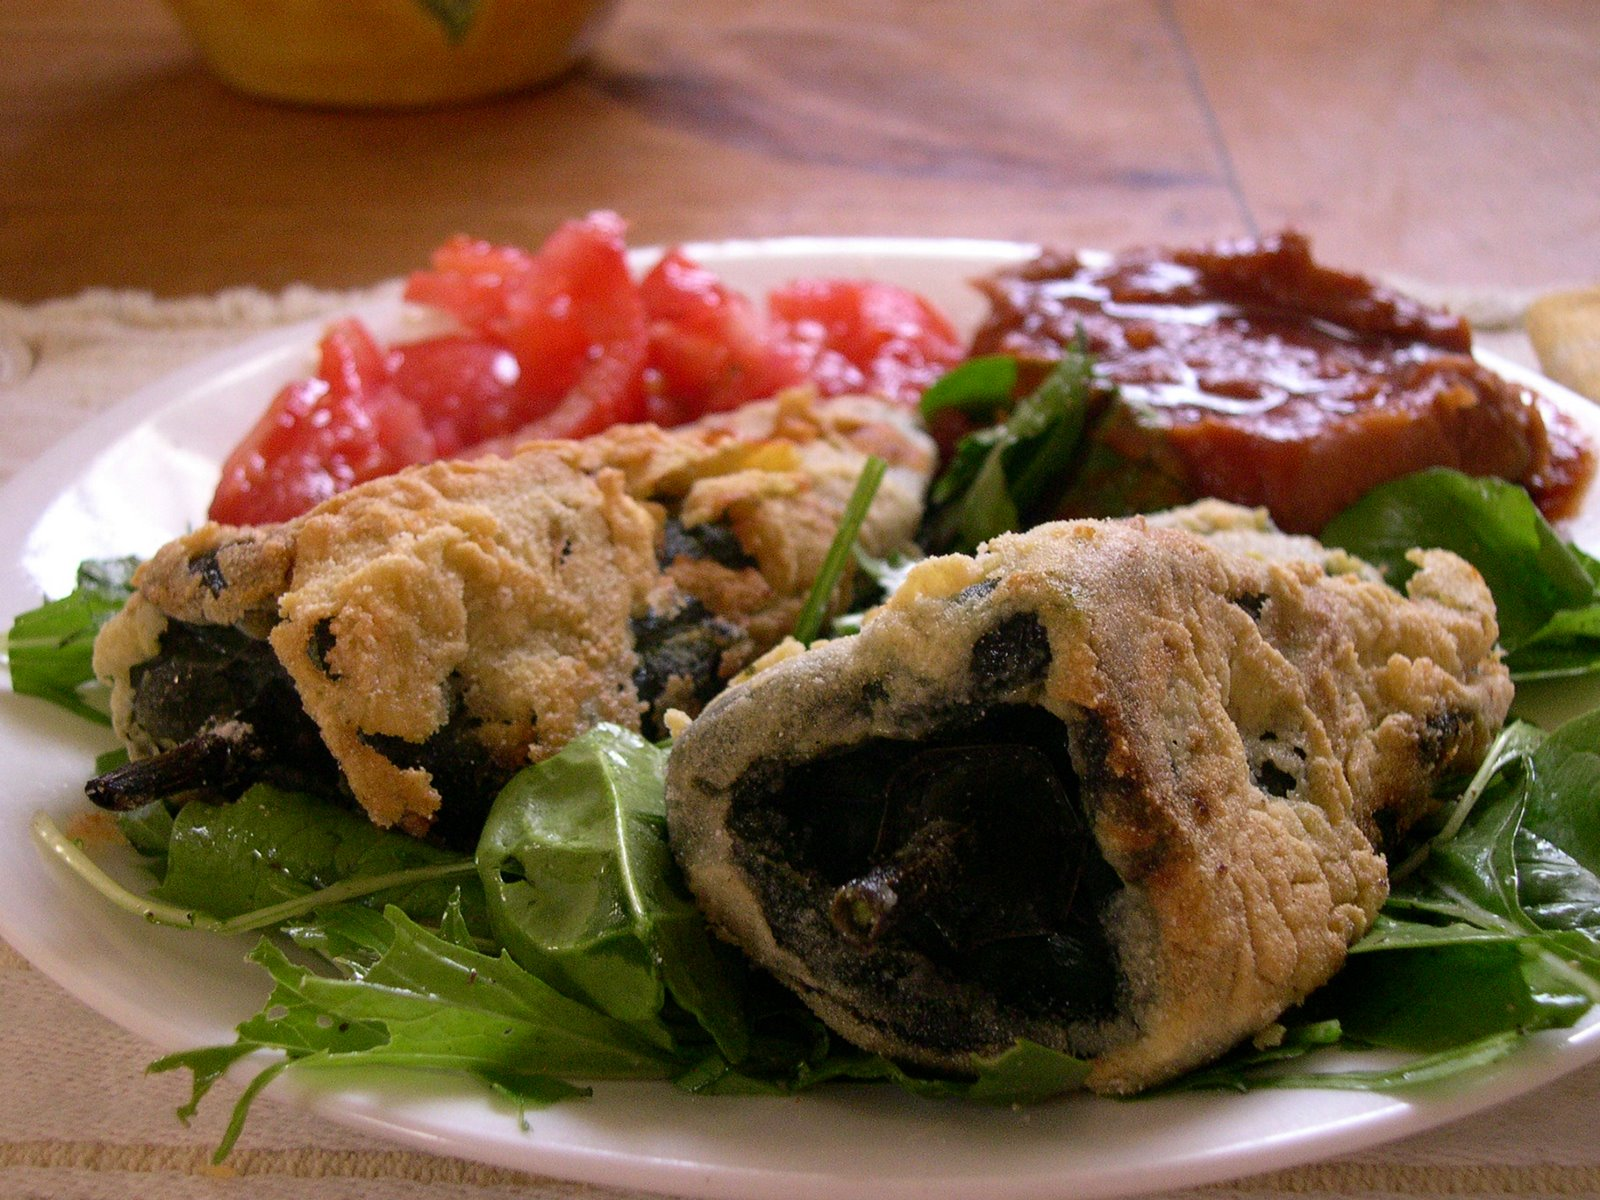 File:Chile Rellenos.jpg - Wikipedia, the free encyclopedia